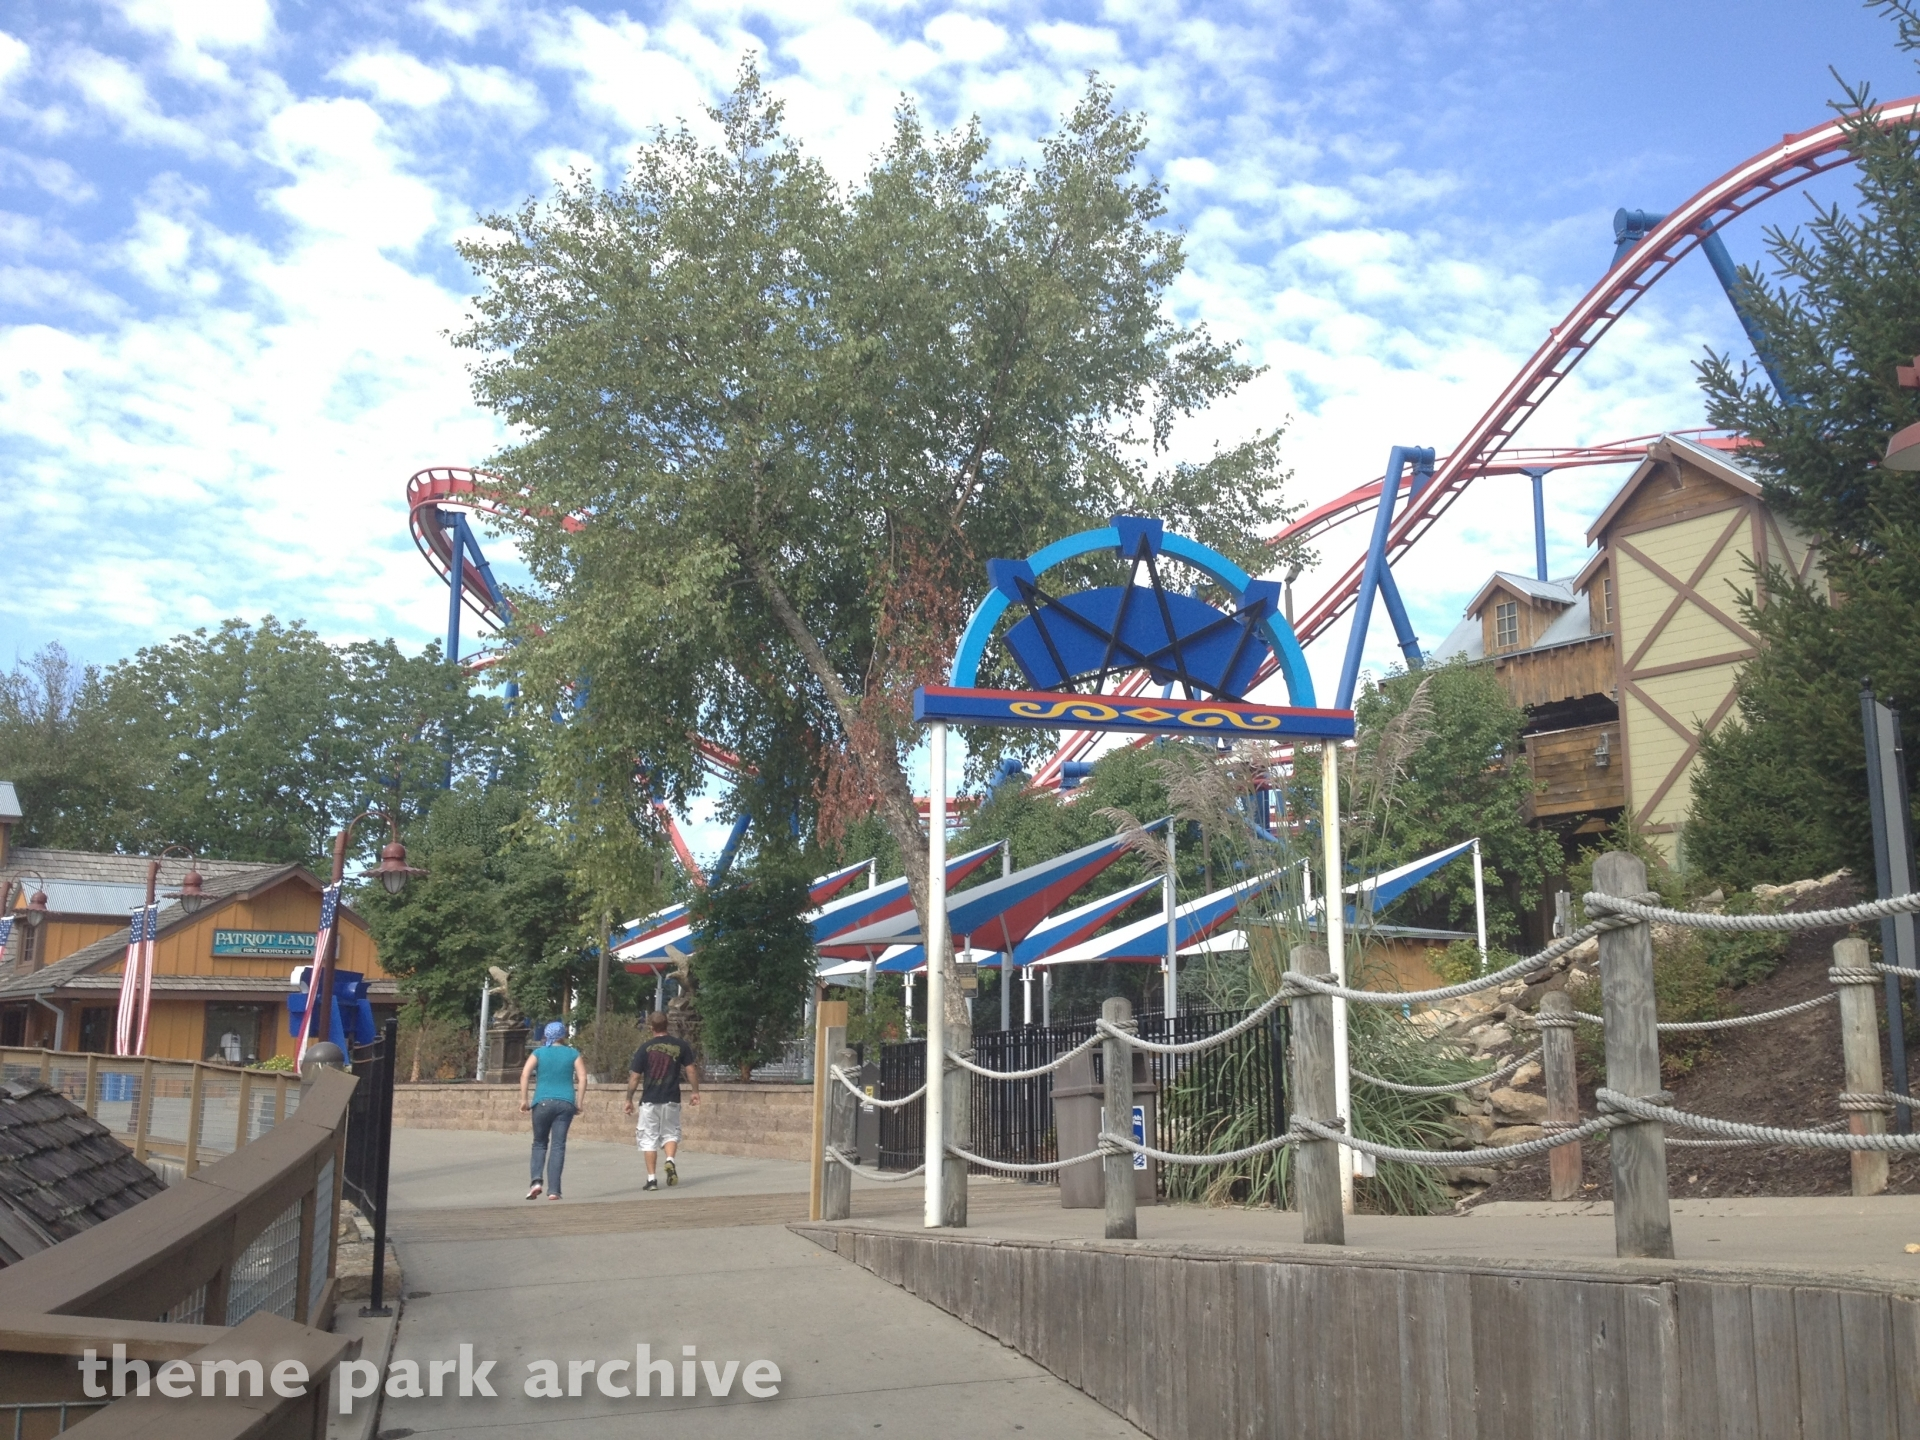 Patriot at Worlds of Fun